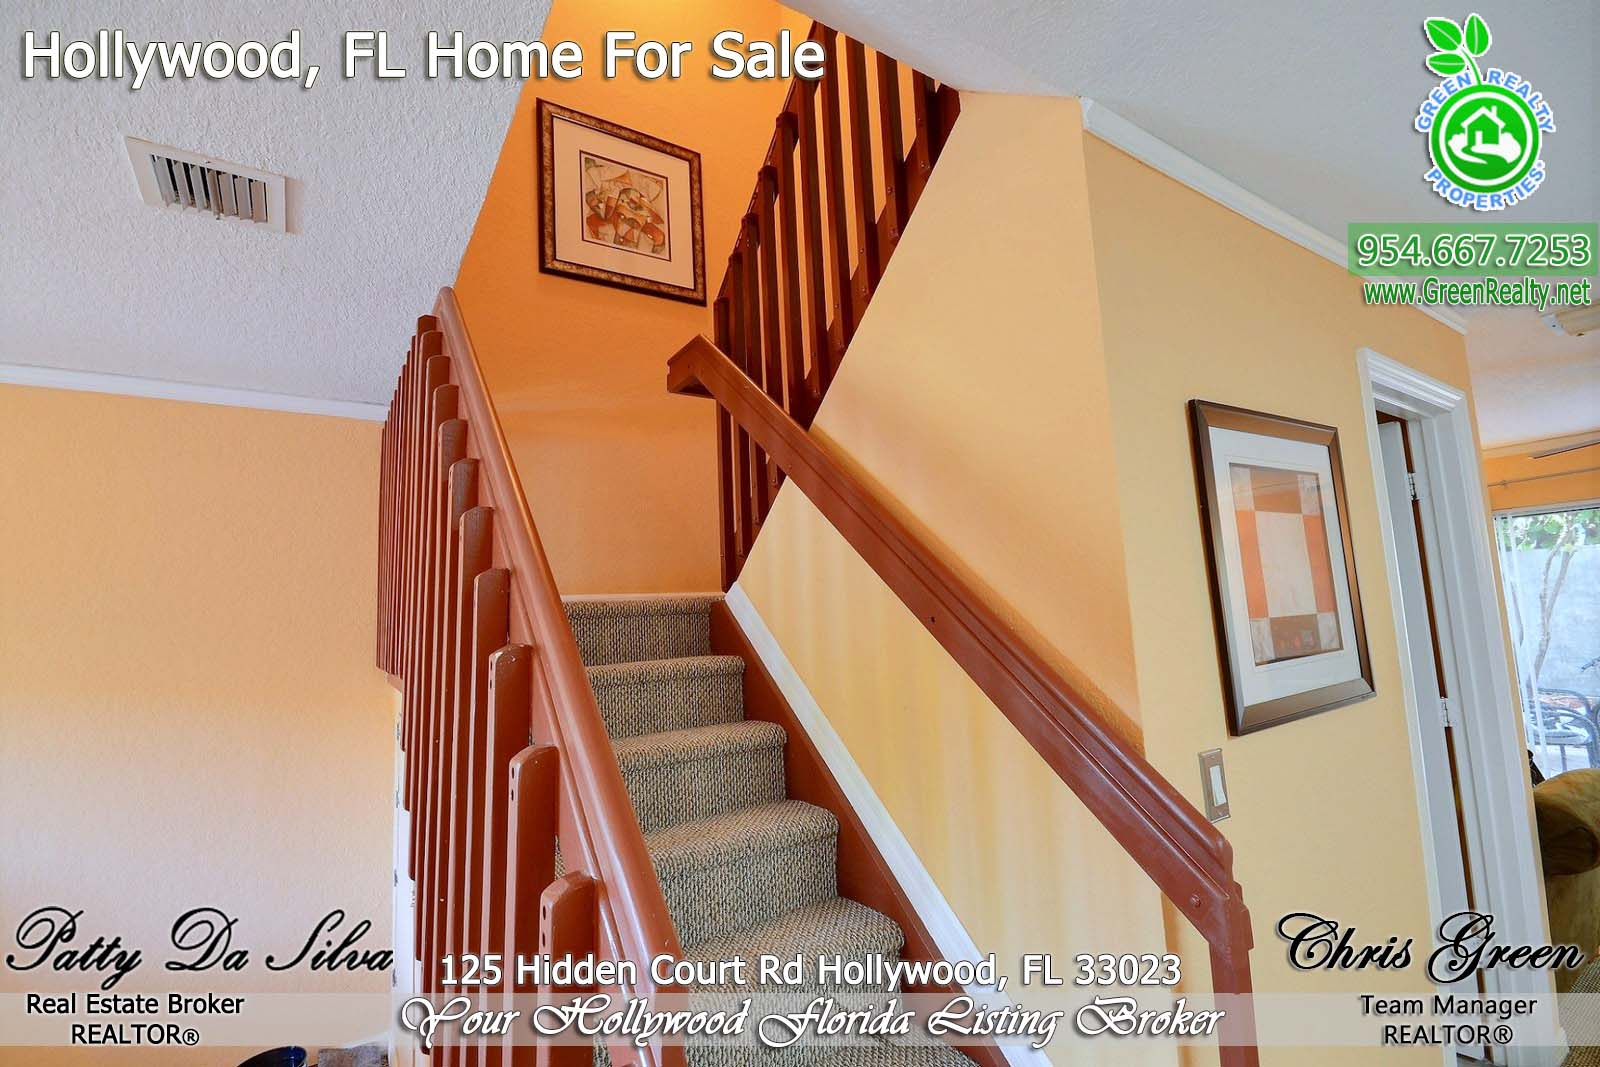 12 Homes For Sale in Hollywood Florida (2)